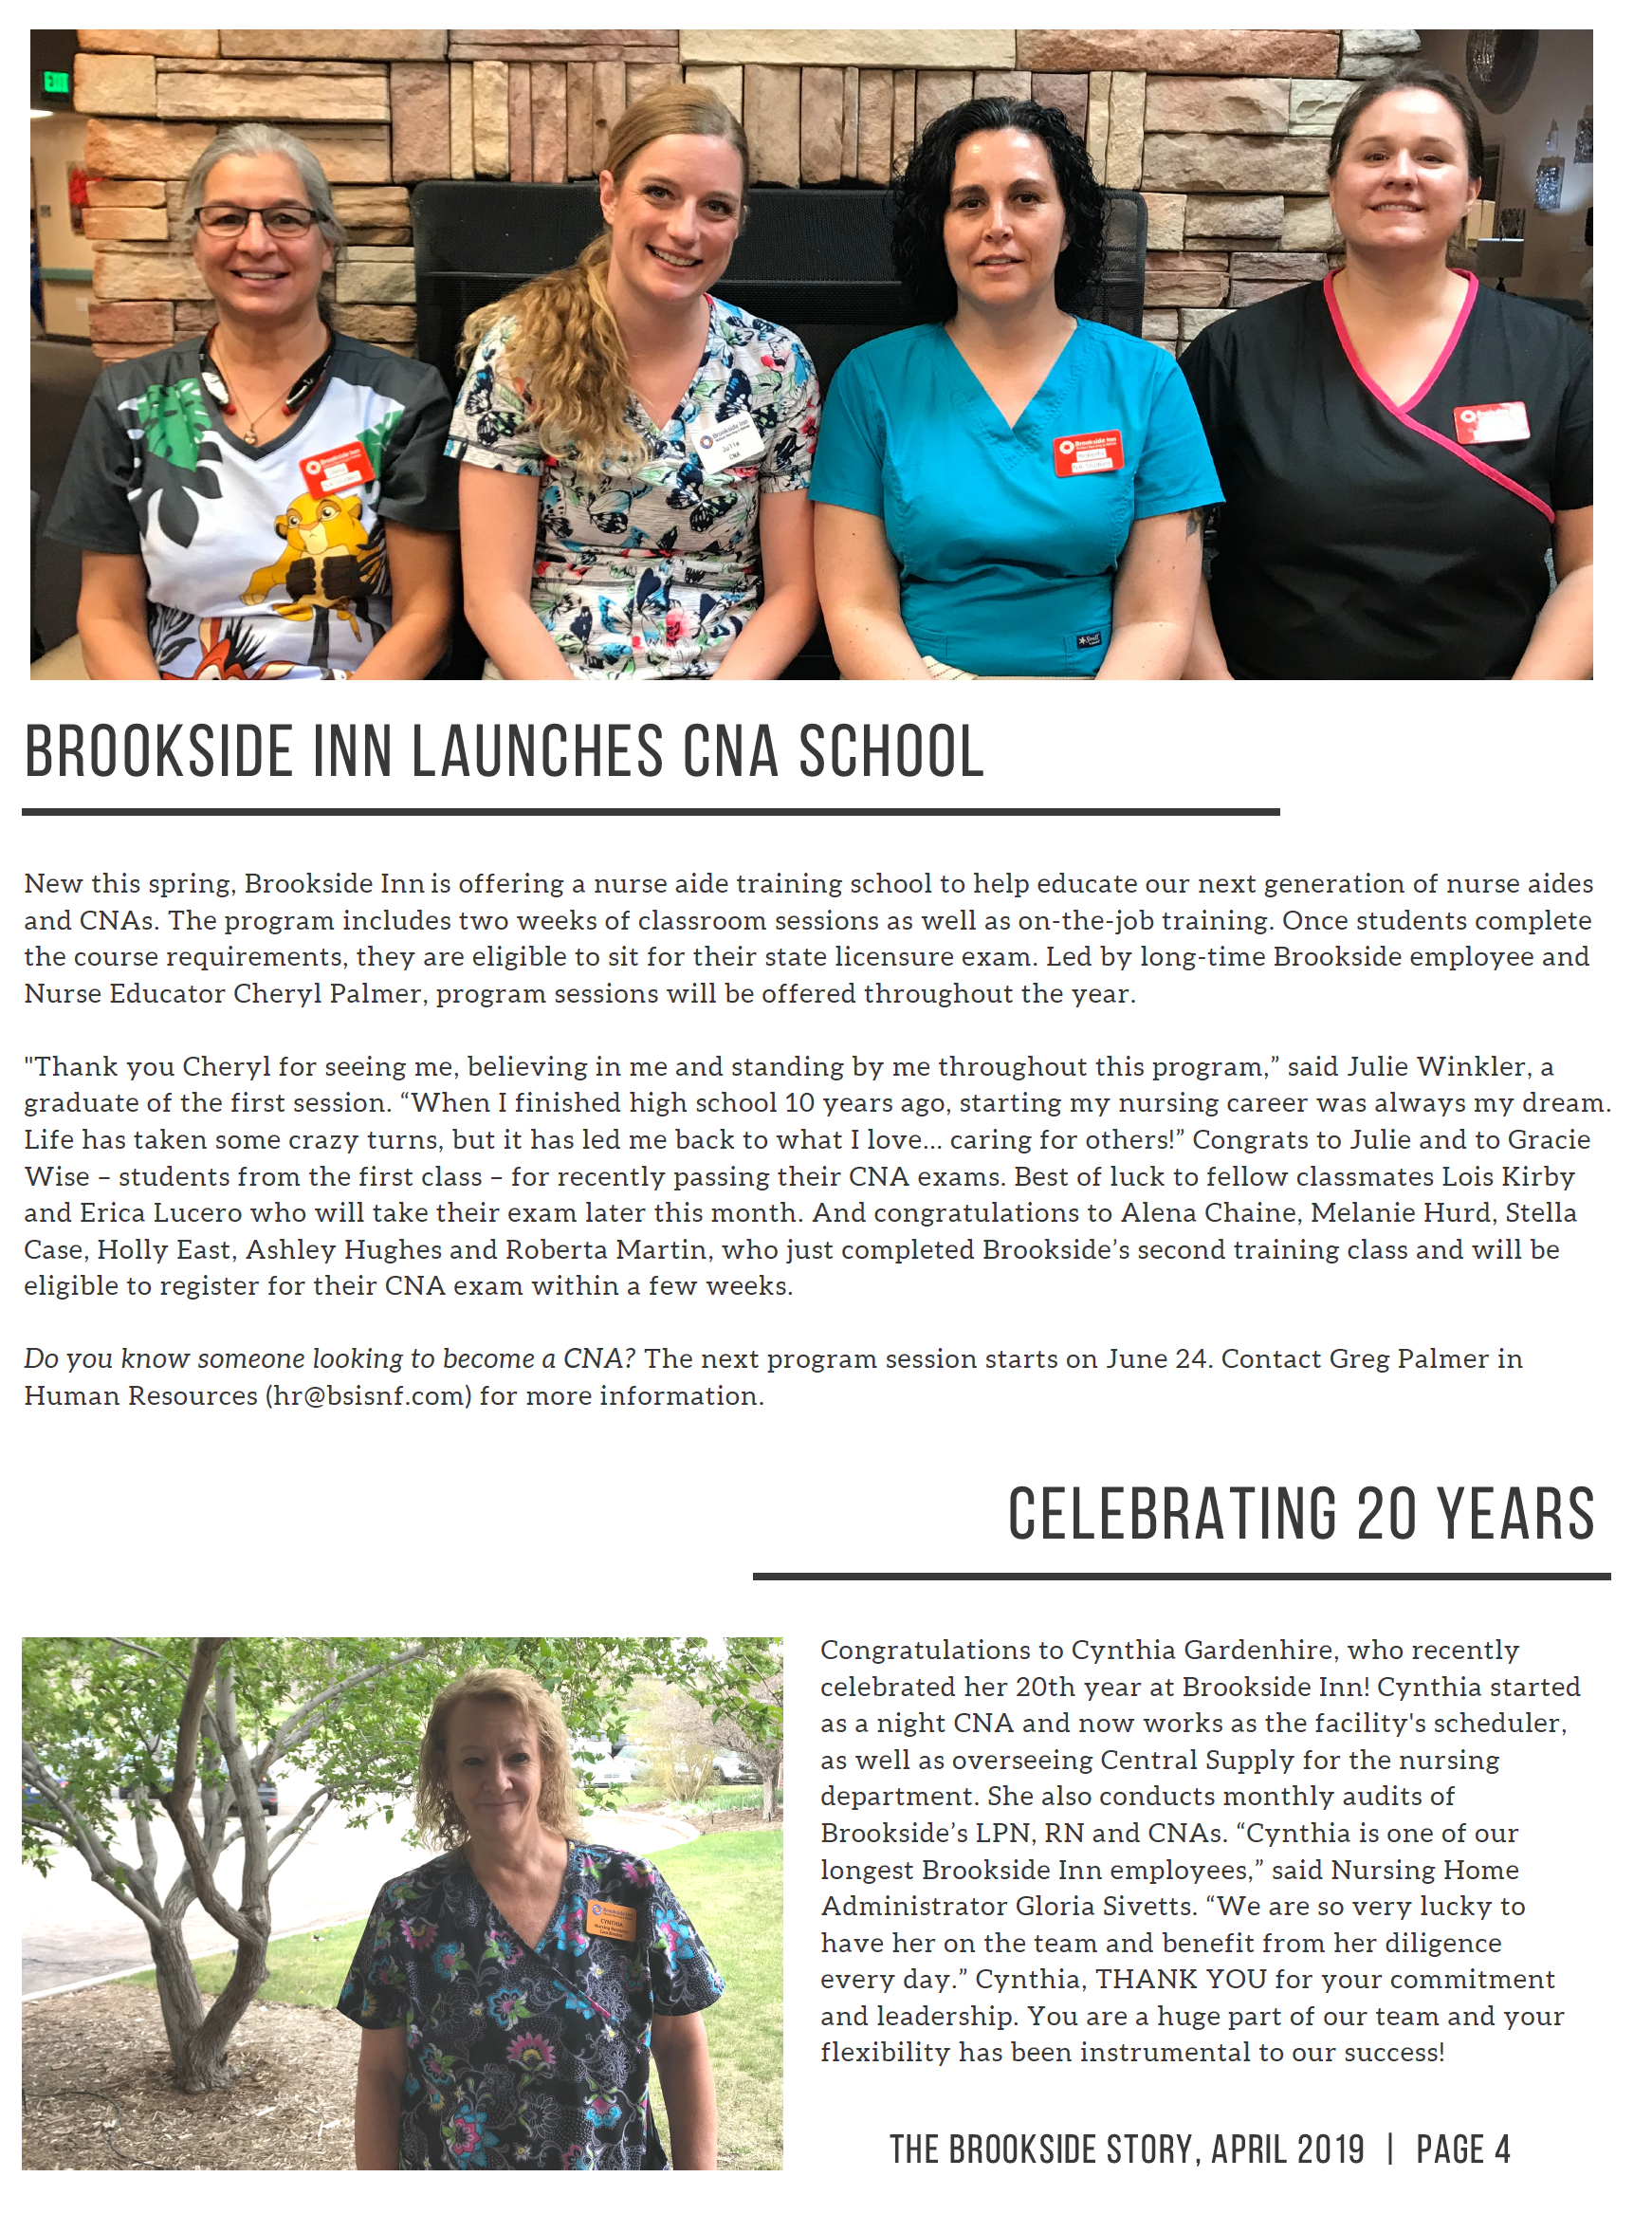 Page 4 Brookside Inn launches a CNA school and is Celebrating some staff that have been with Brookside Inn for 20 years!